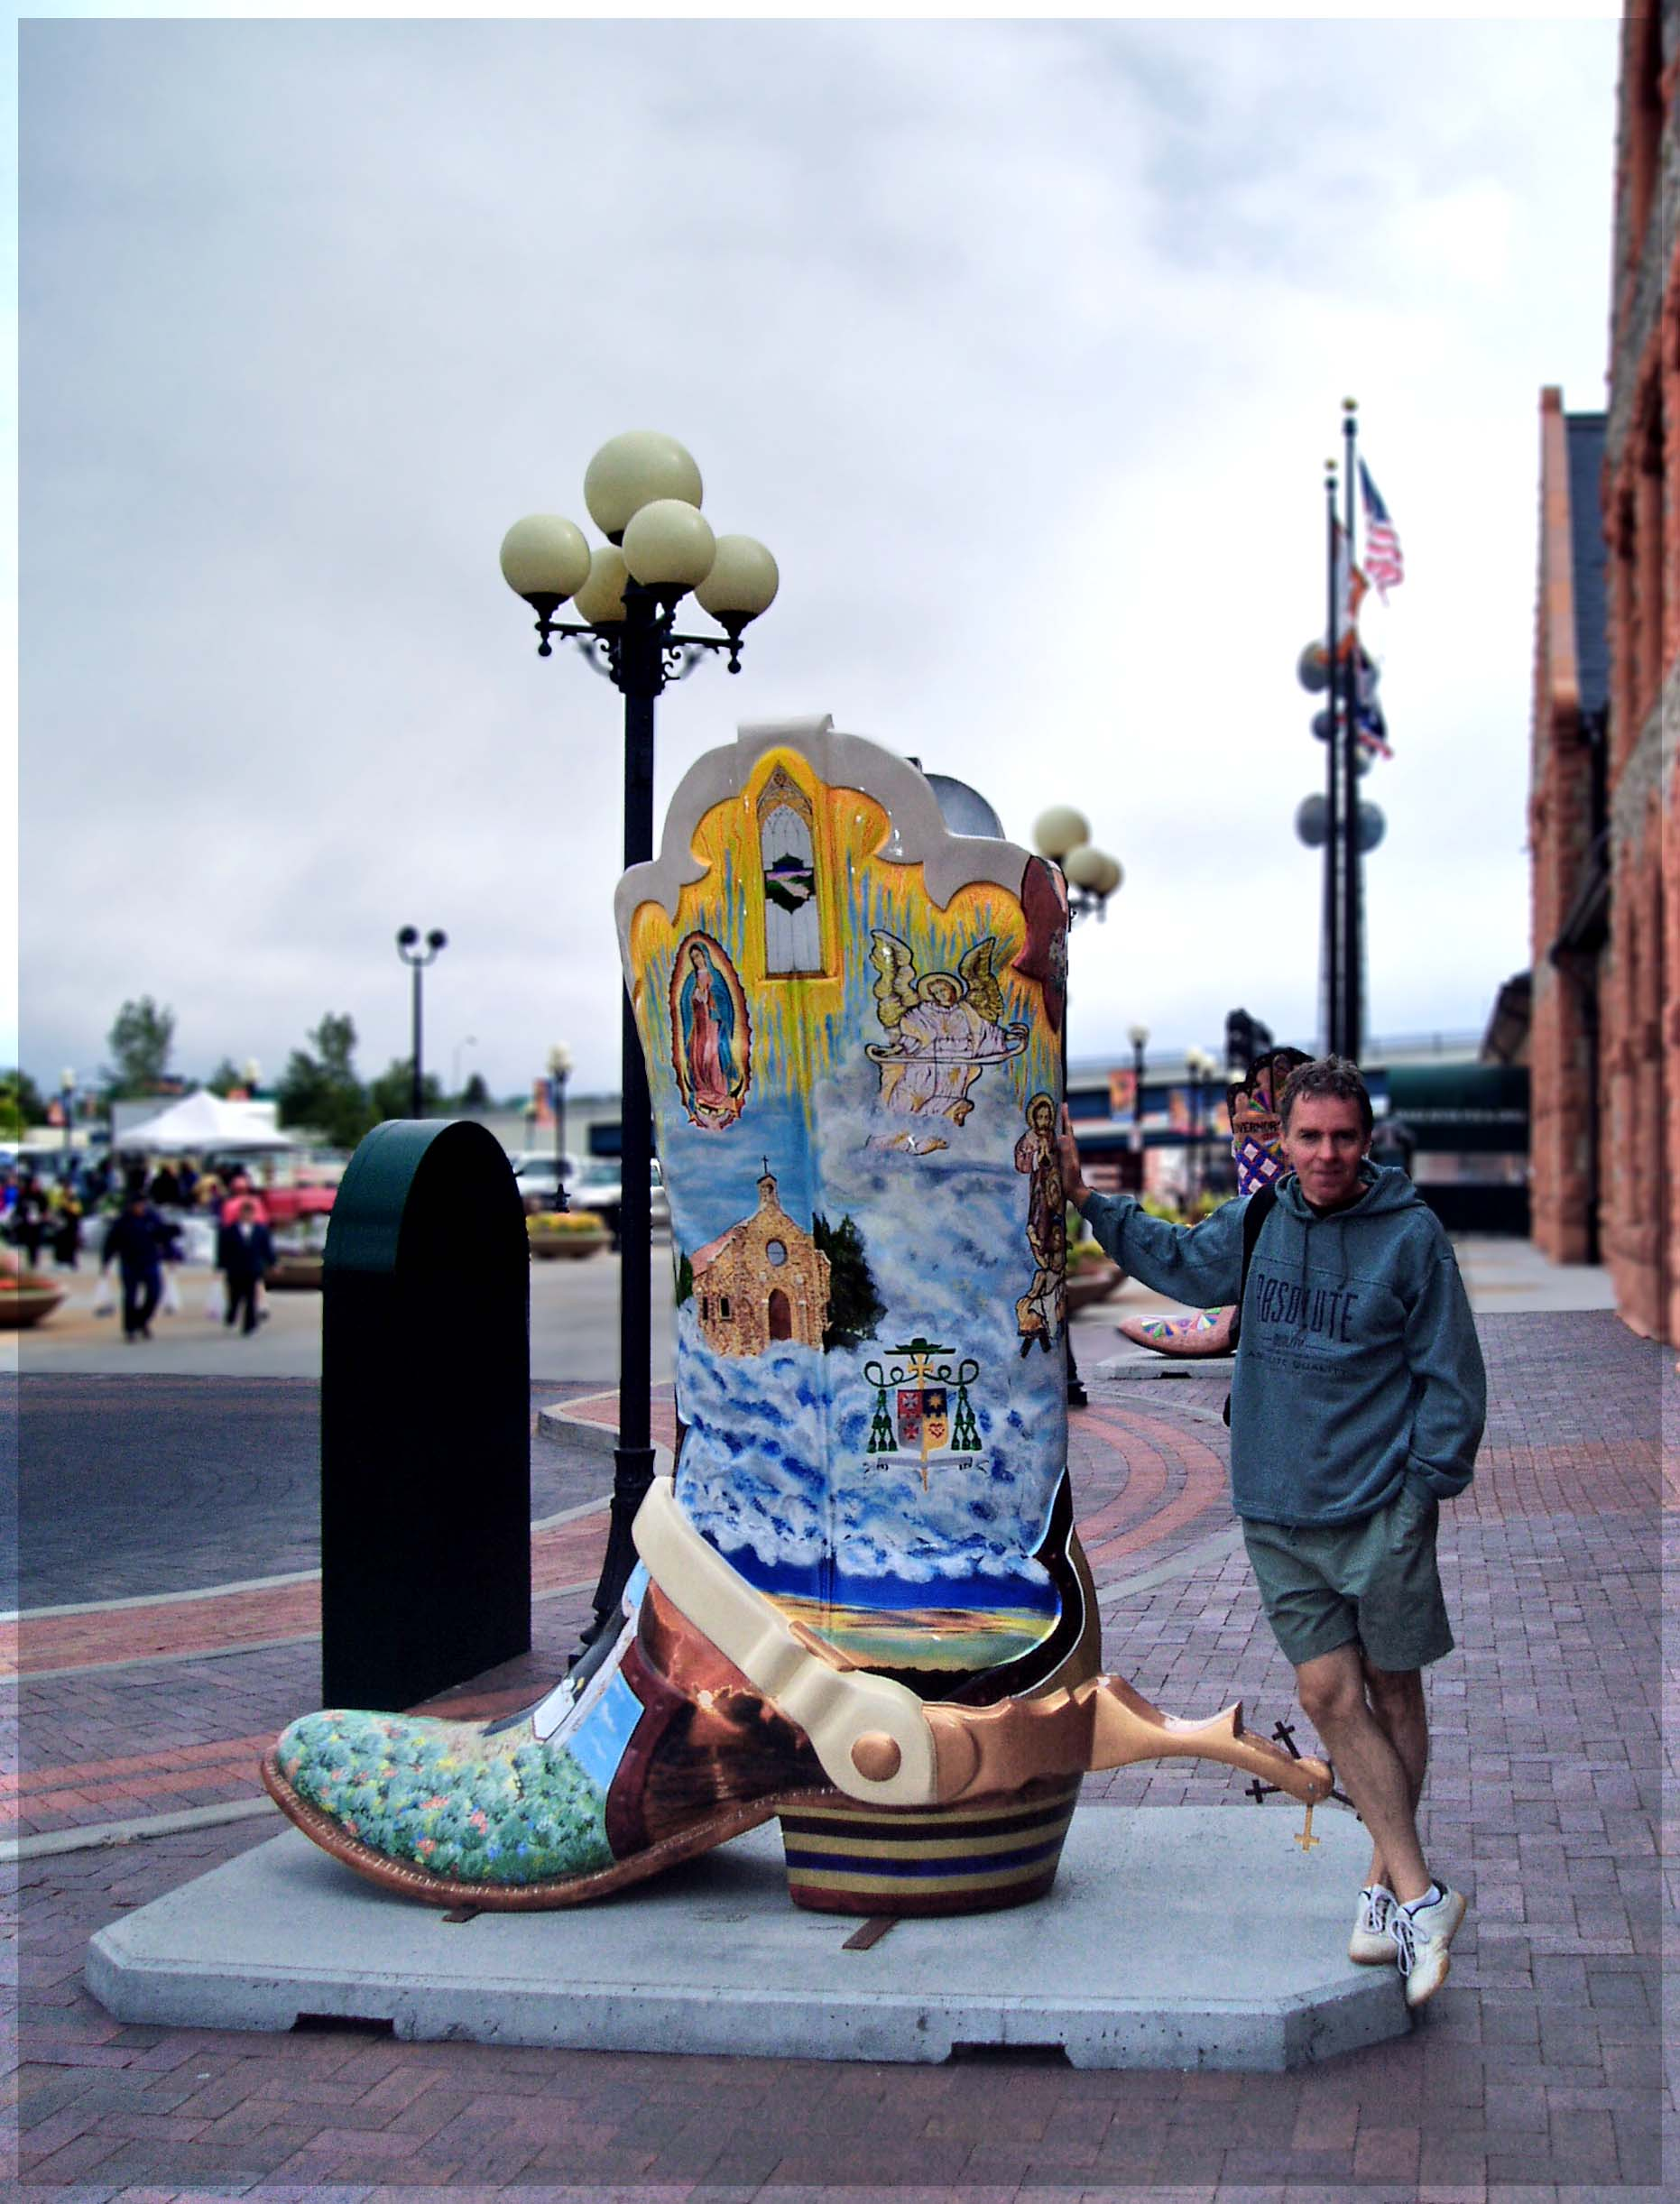 Huge painted model of a cowboy boot